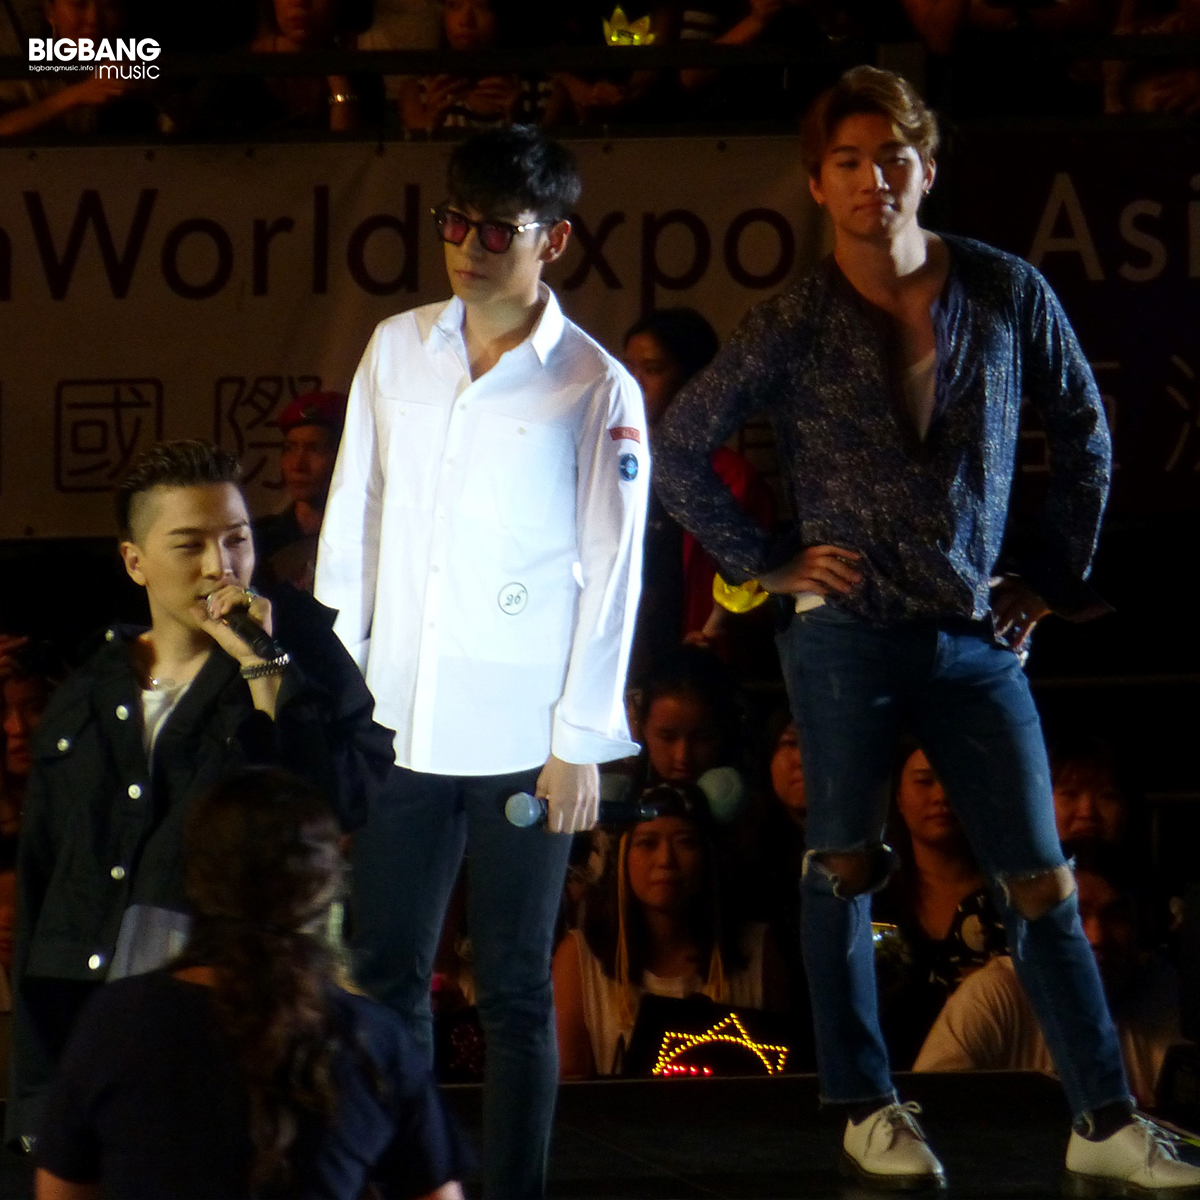 BBmusic-BIGBANG-Hong-Kong-Day-1-2016-07-22-02